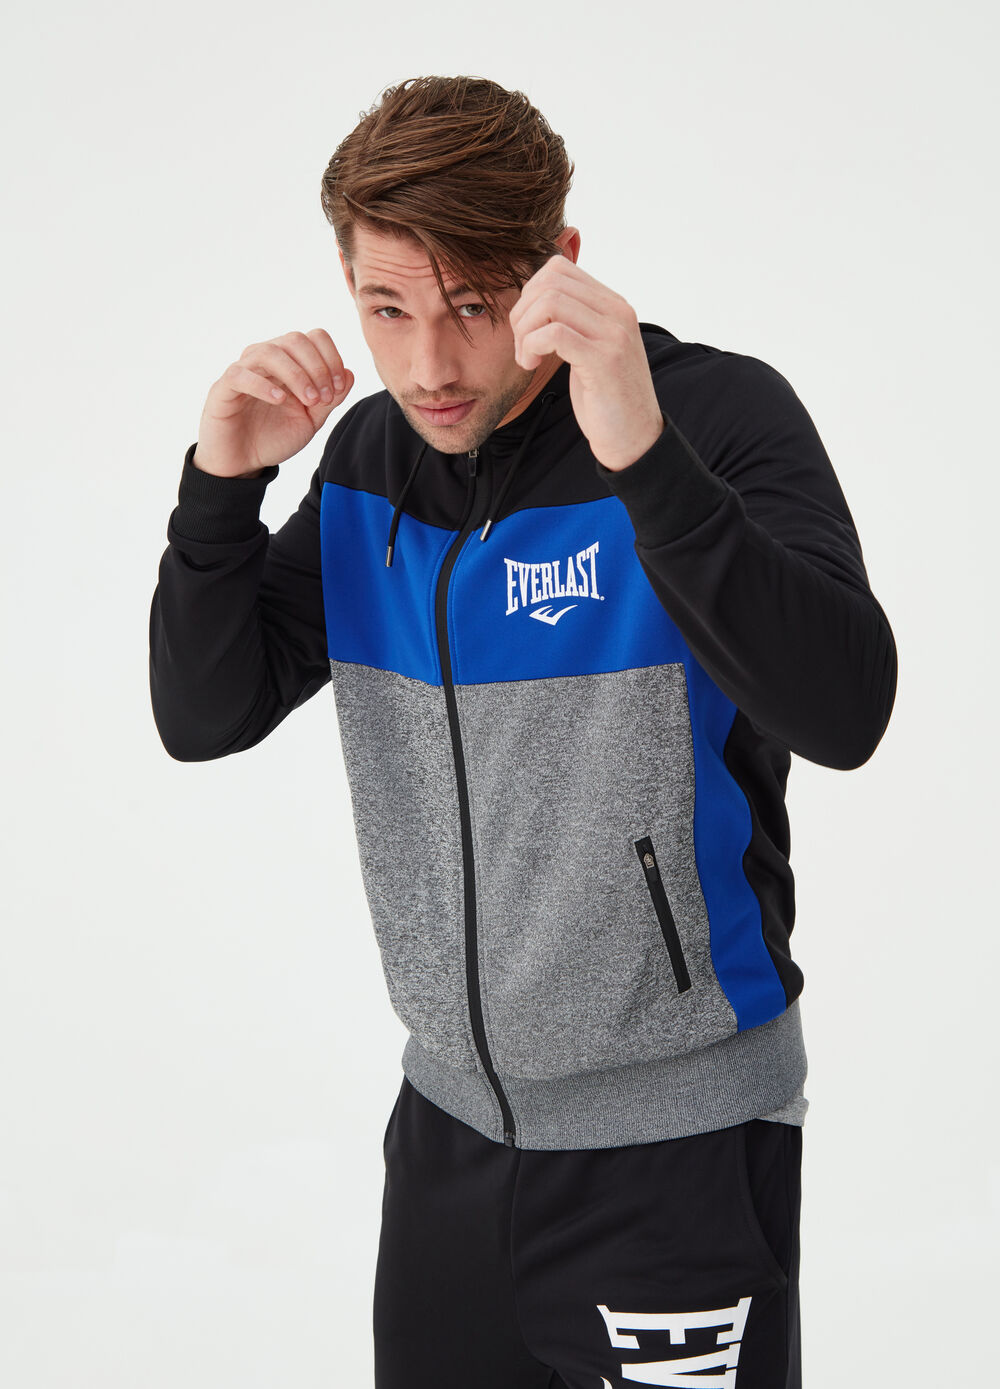 Everlast stretch sweatshirt with lettering